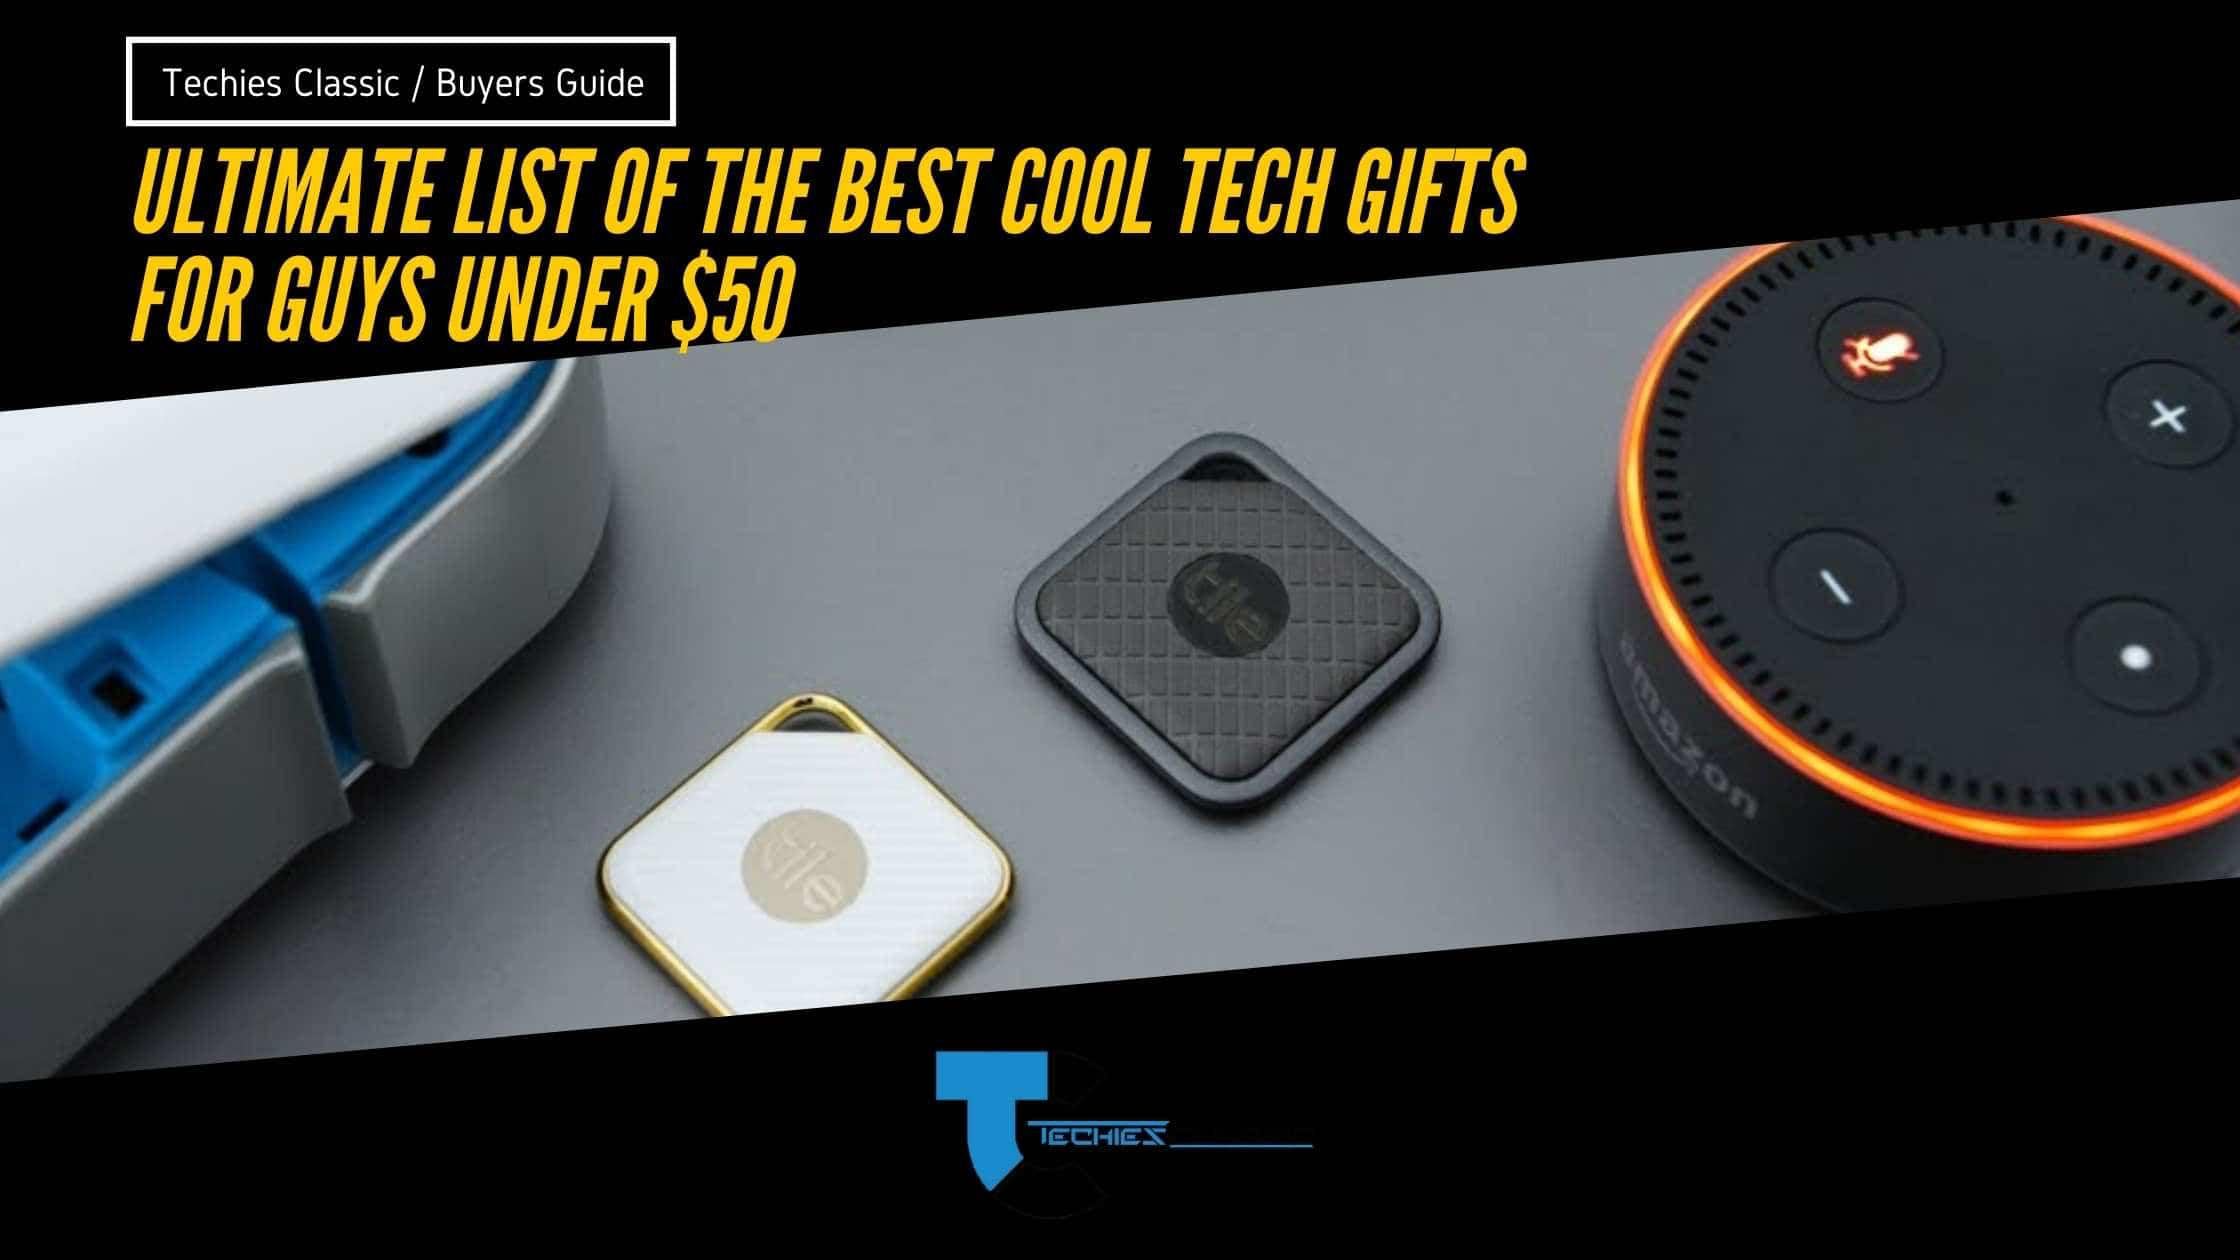 Ultimate list of the best cool tech gifts for guys under $50